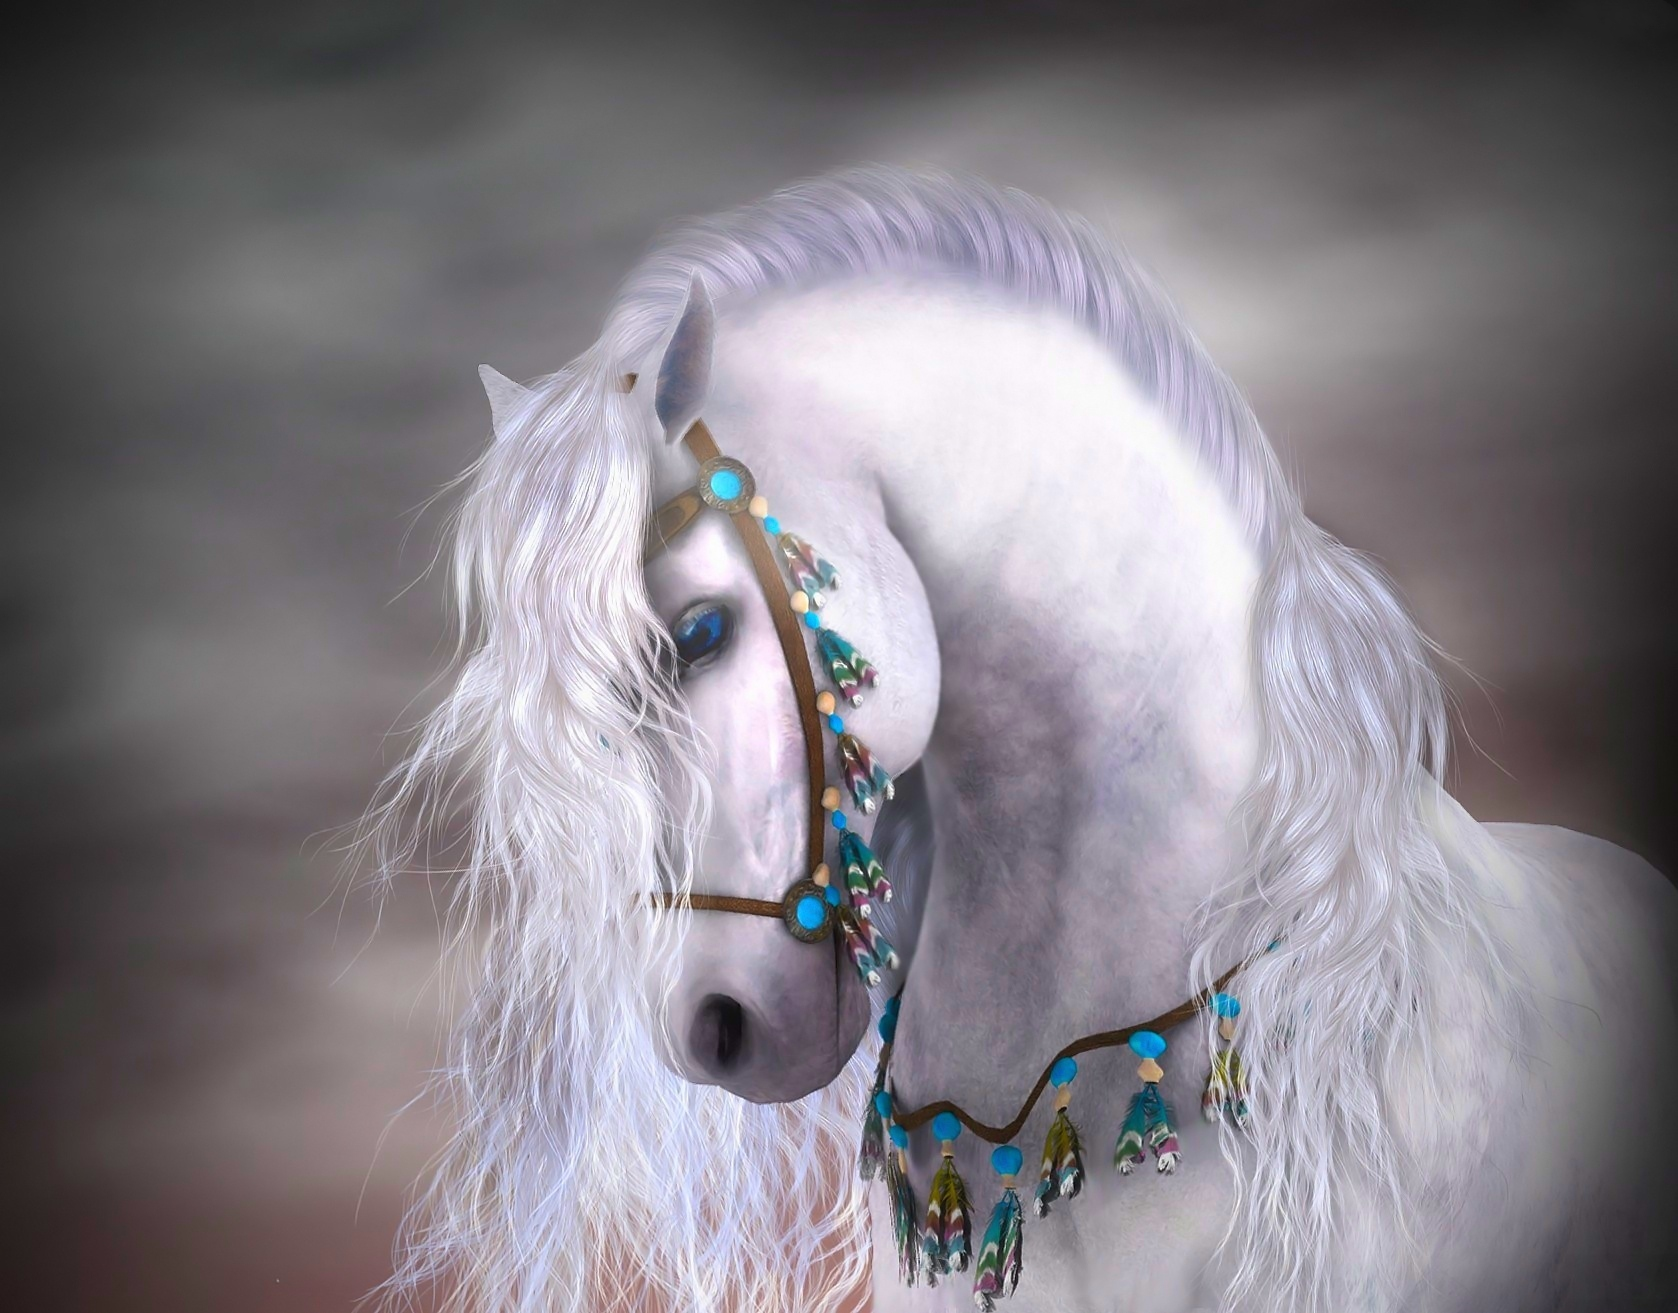 Top Wallpaper Horse Android - 40a7a66df55519ae6bfb8ee18d88f7cb  Trends_573121.png